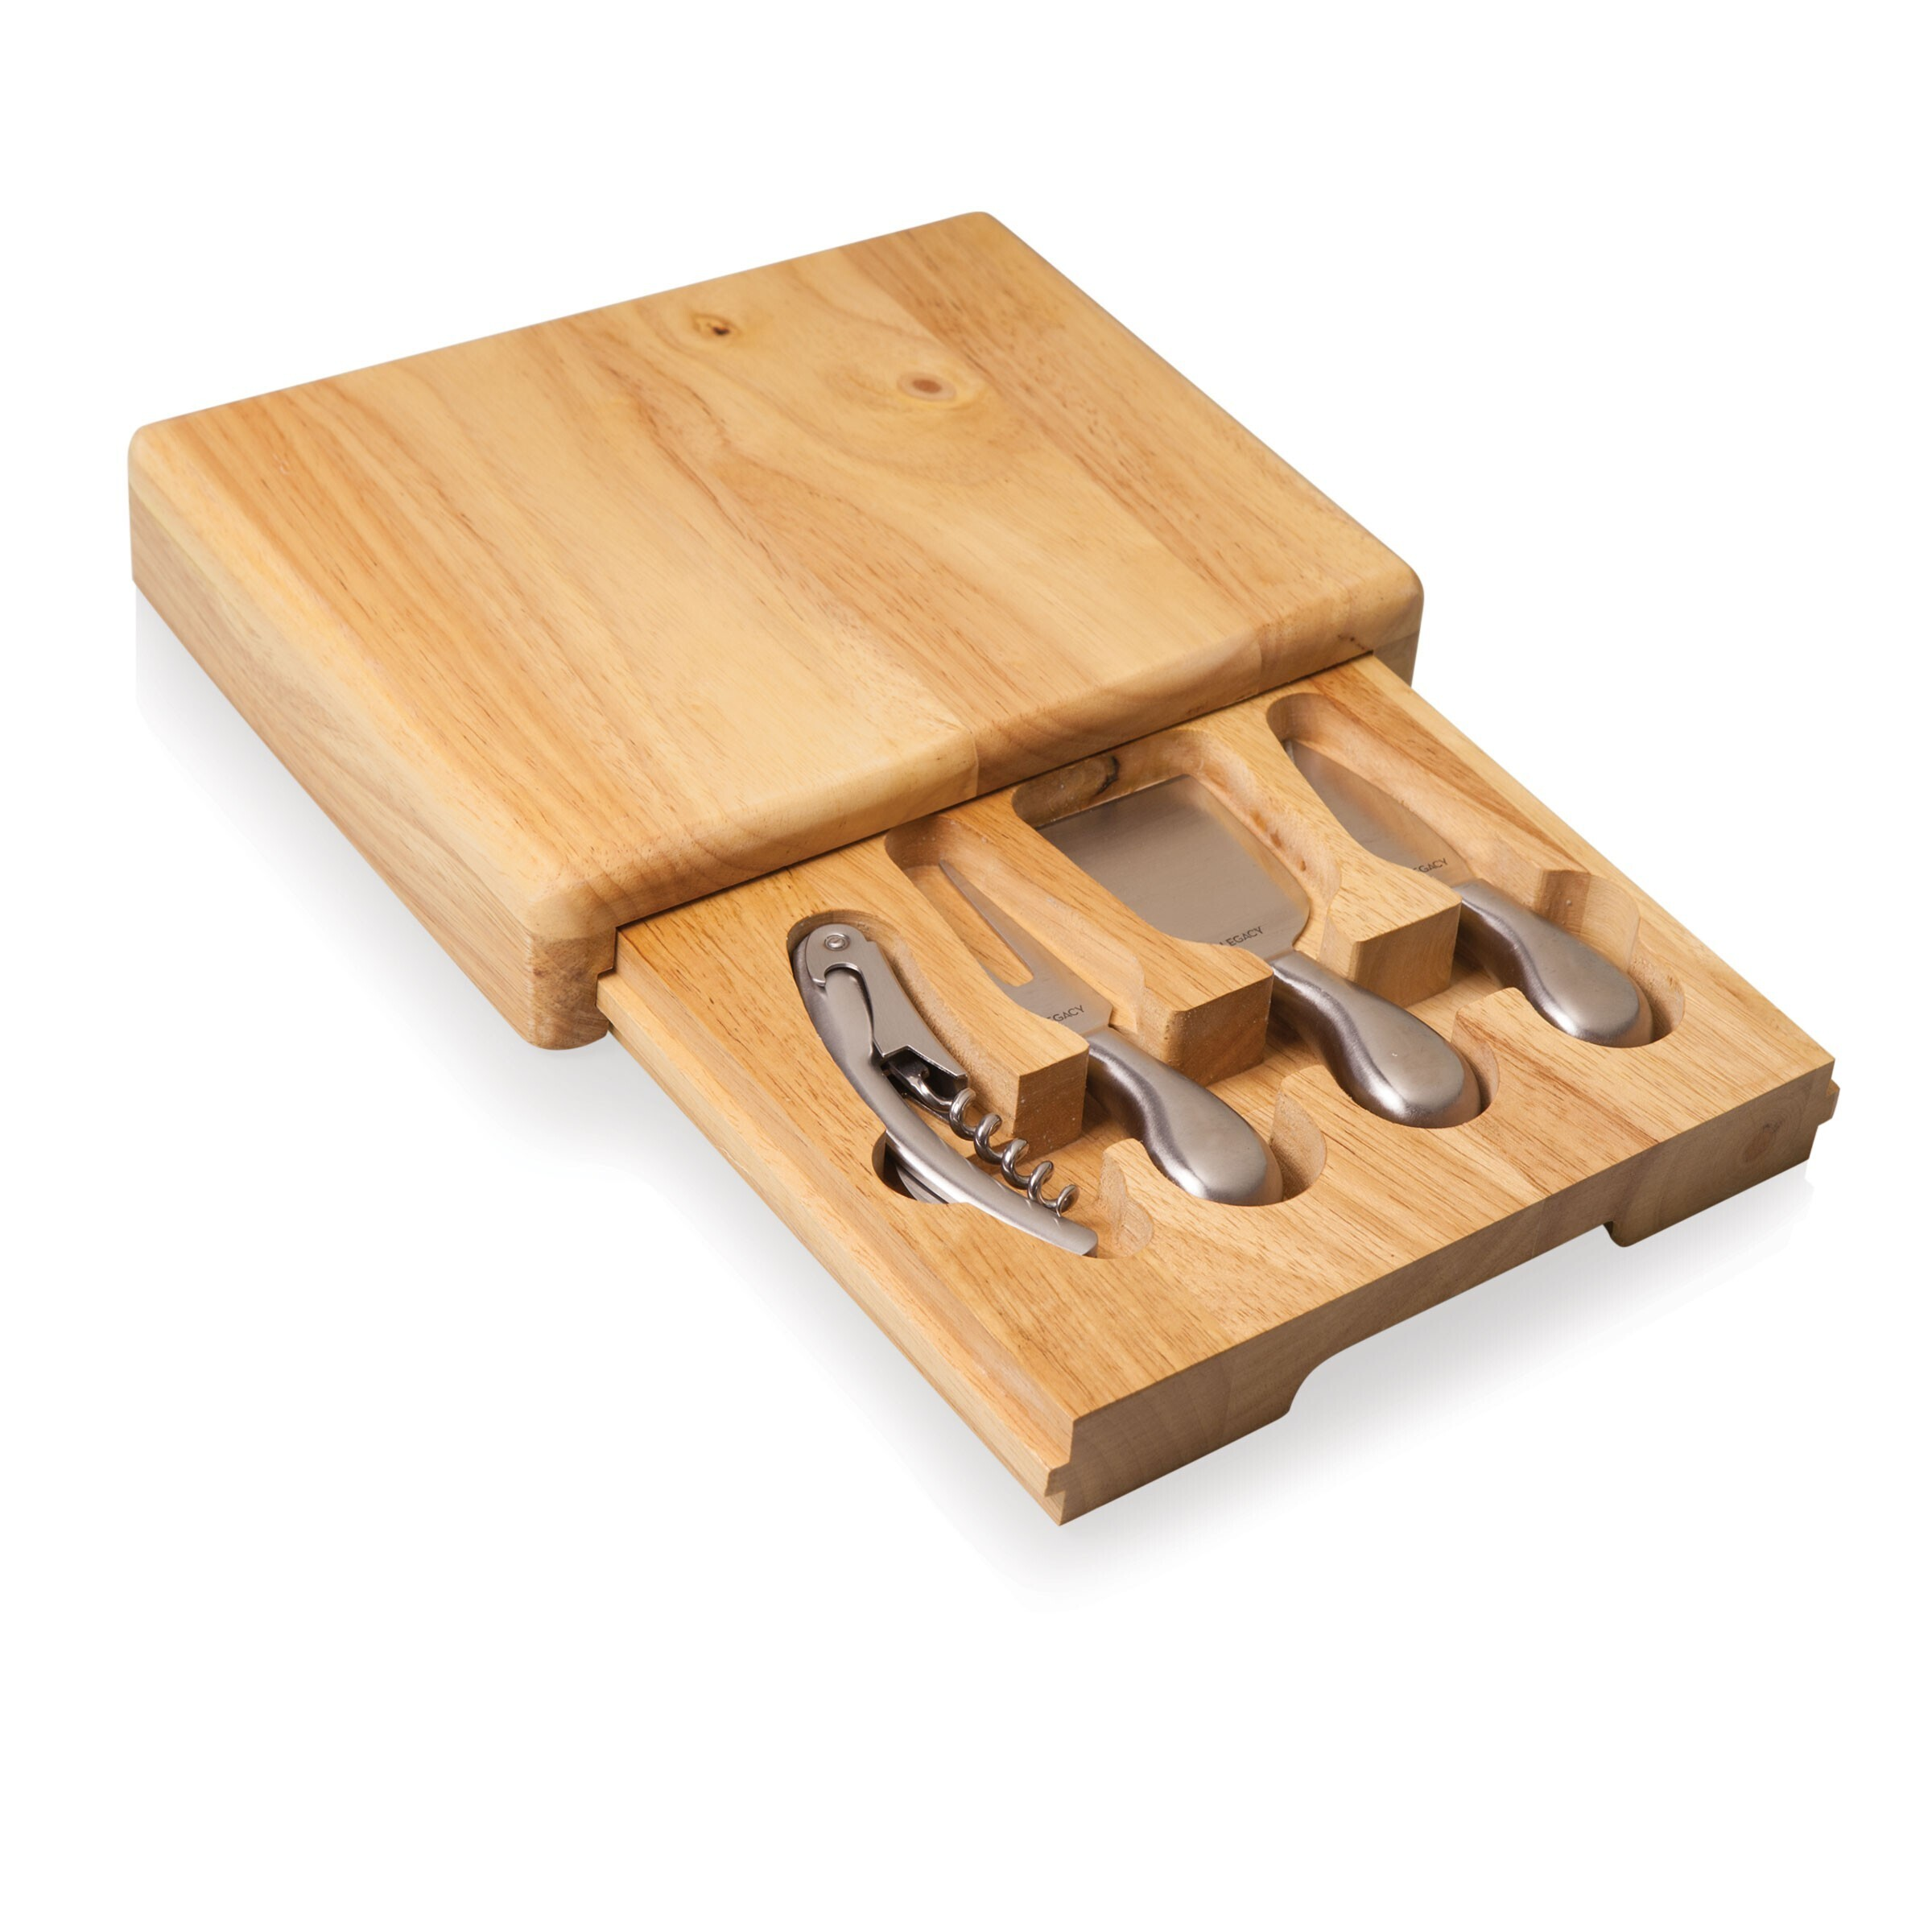 Festiva Cheese Board Set